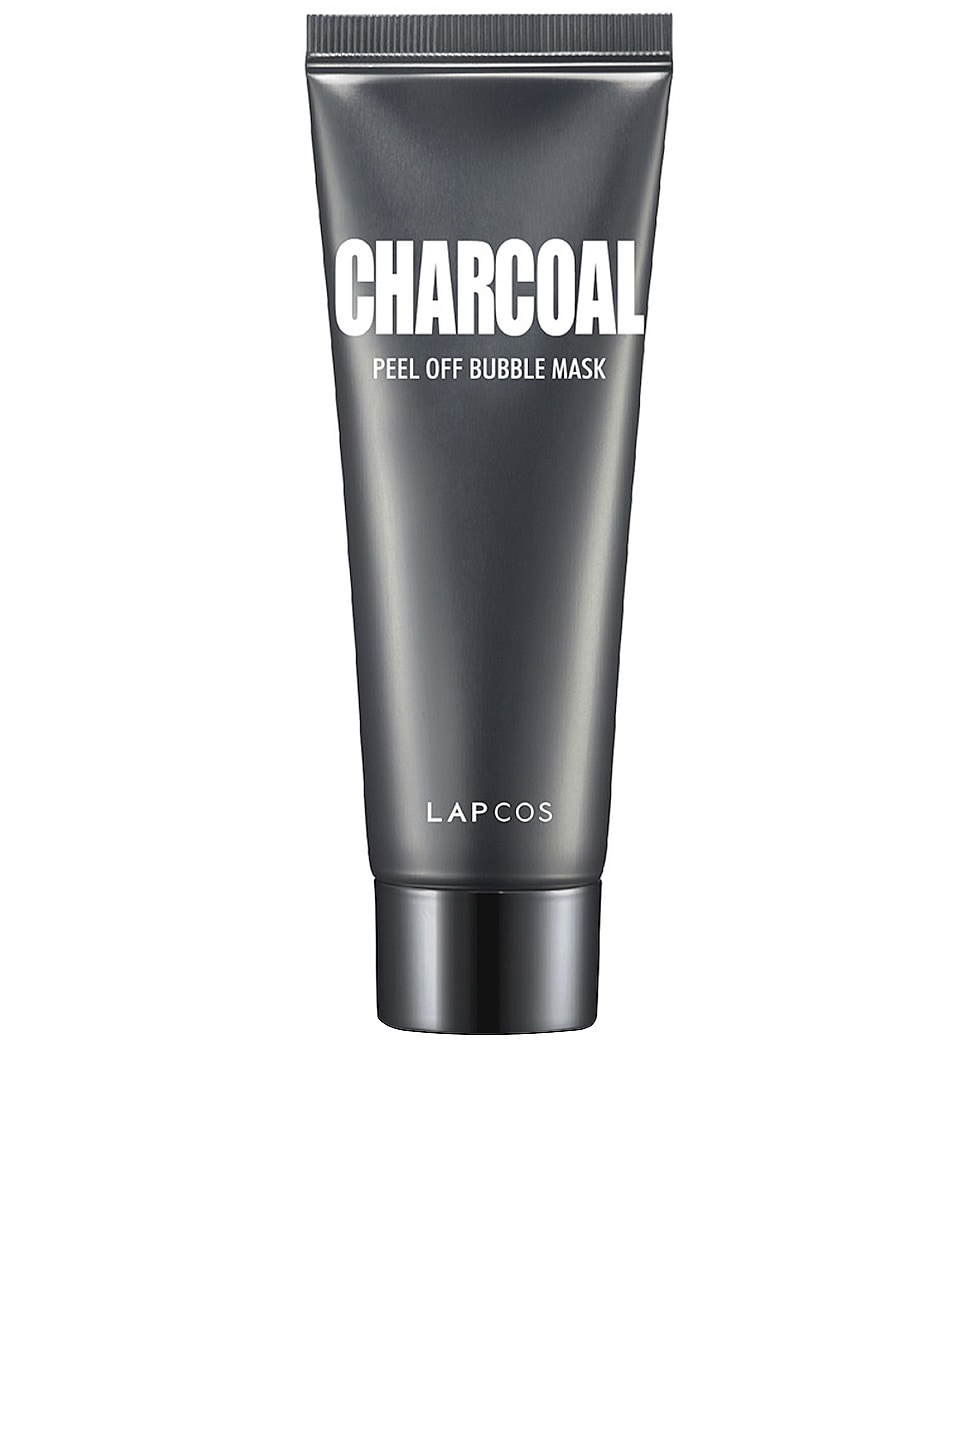 LAPCOS CHARCOAL PEEL OFF BUBBLE MASK